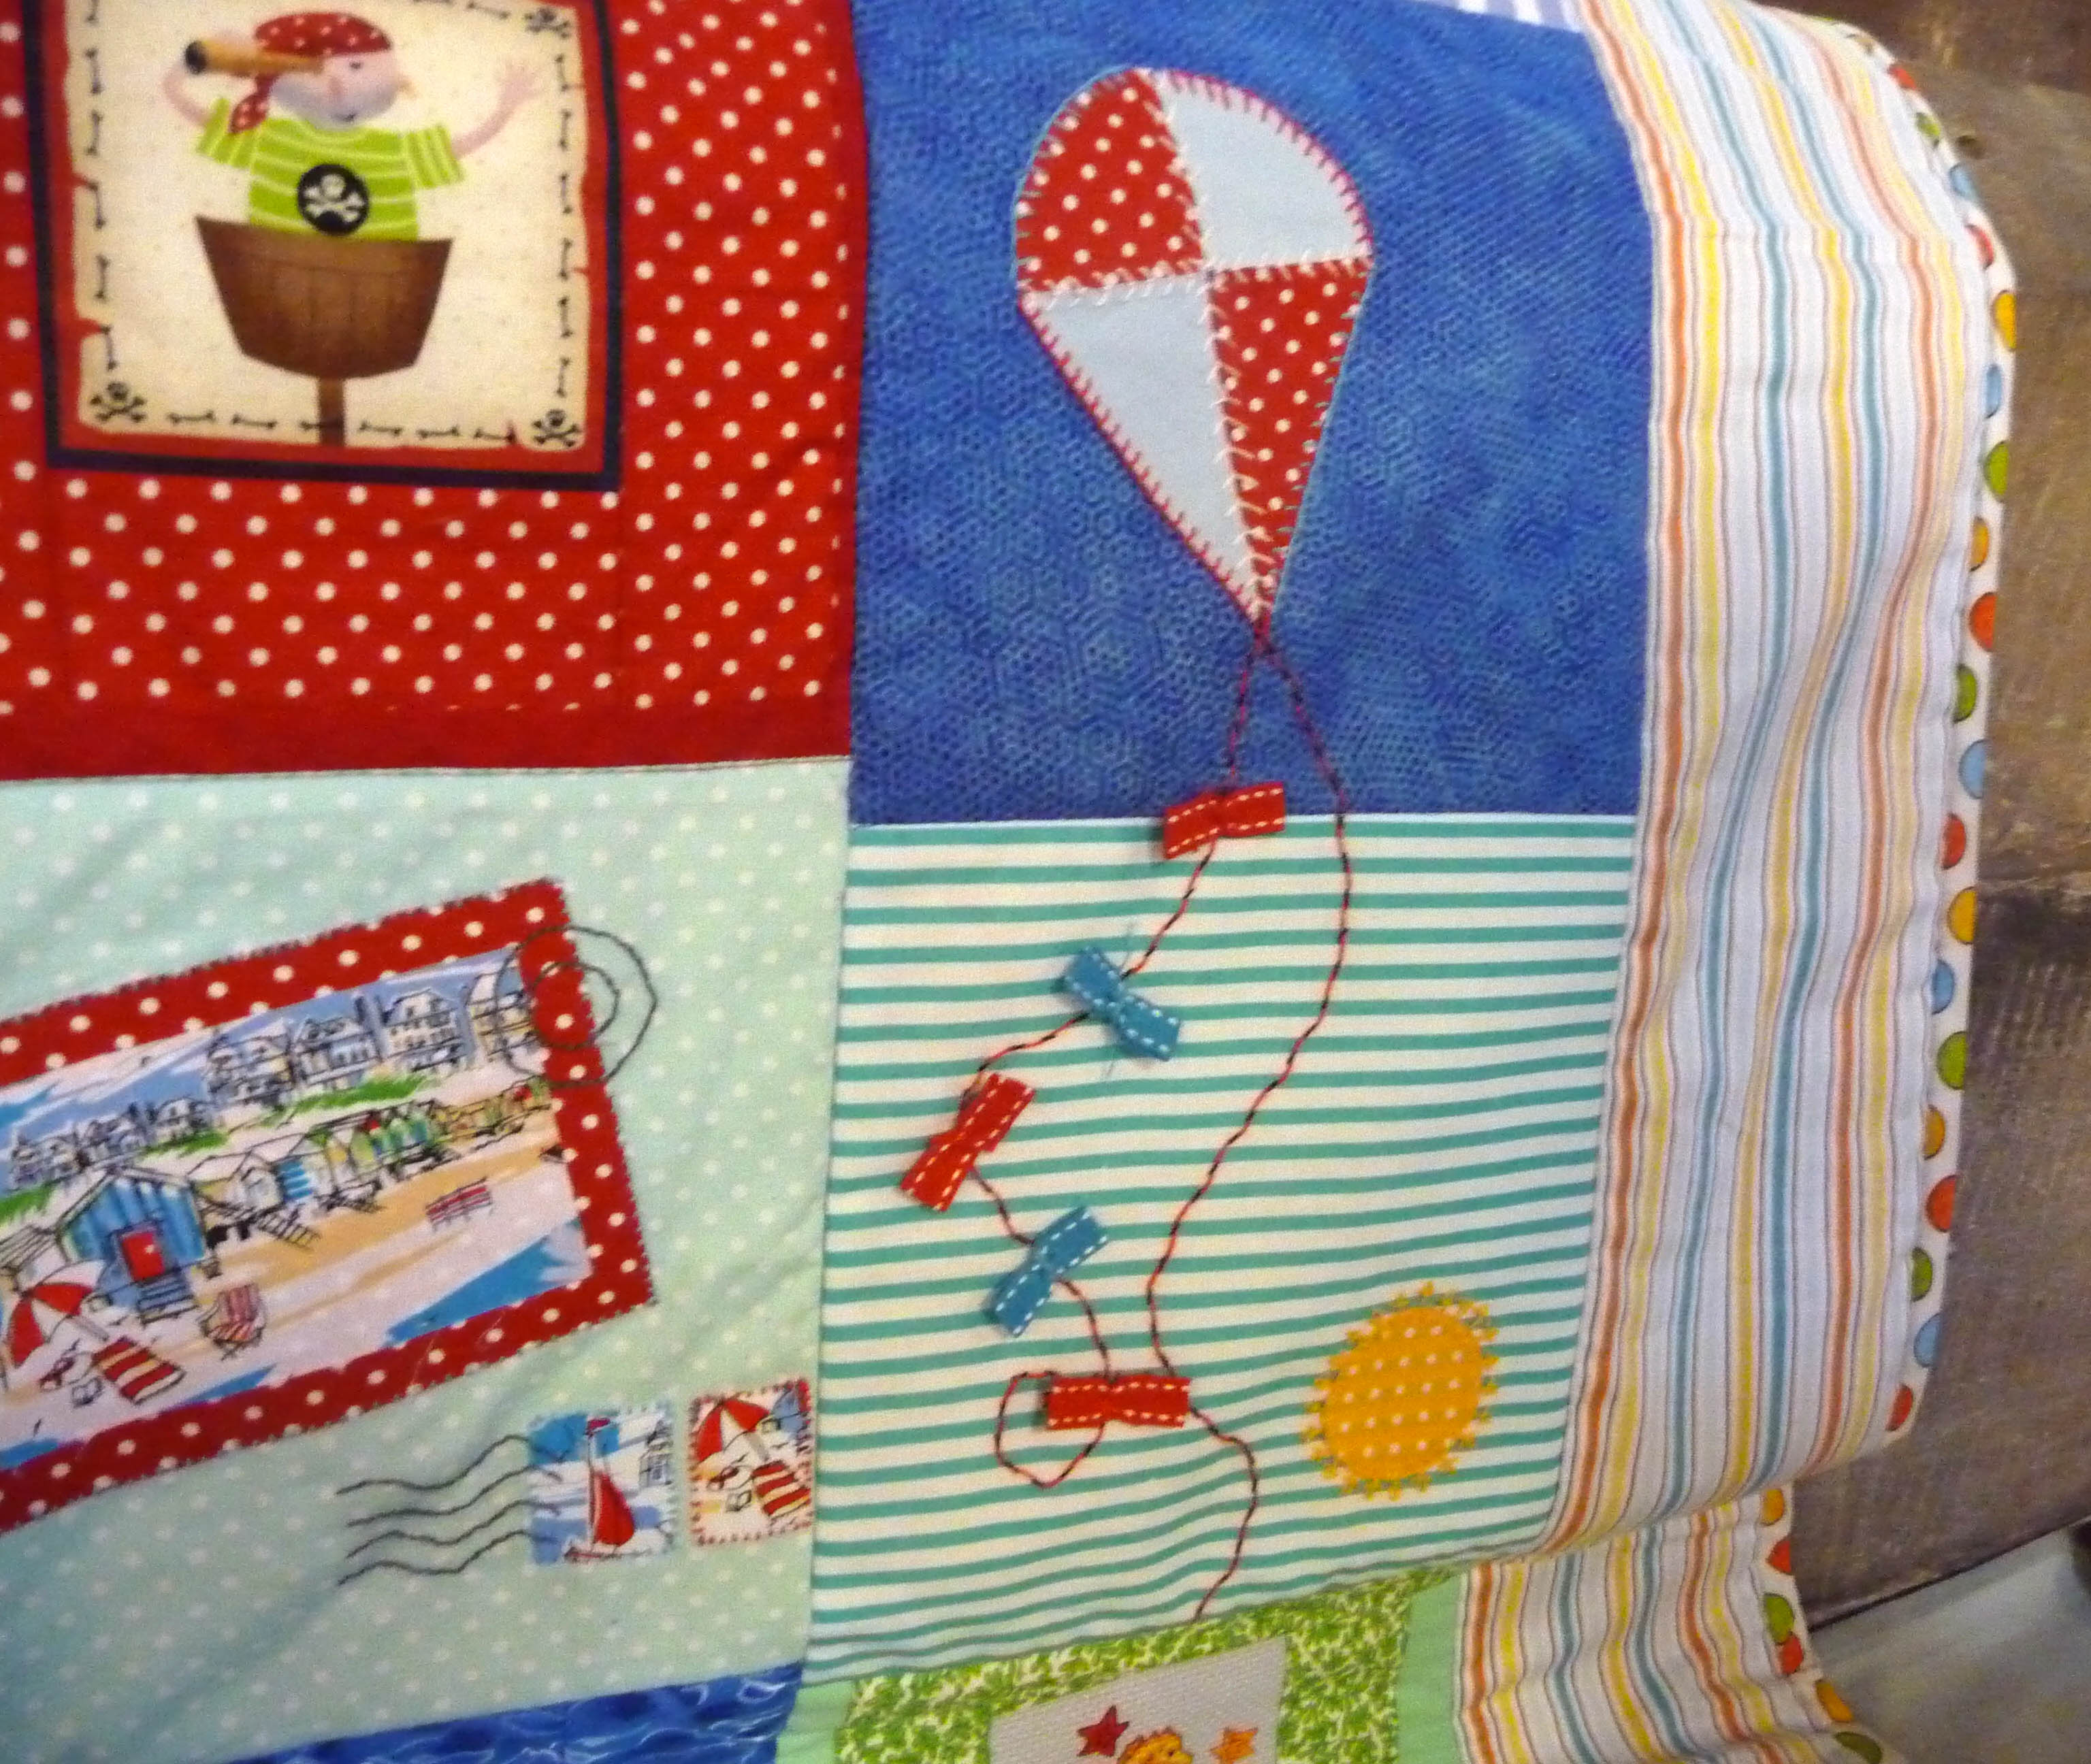 detail of quilt by Sheila Dundas, Stitchin' Sisters Group